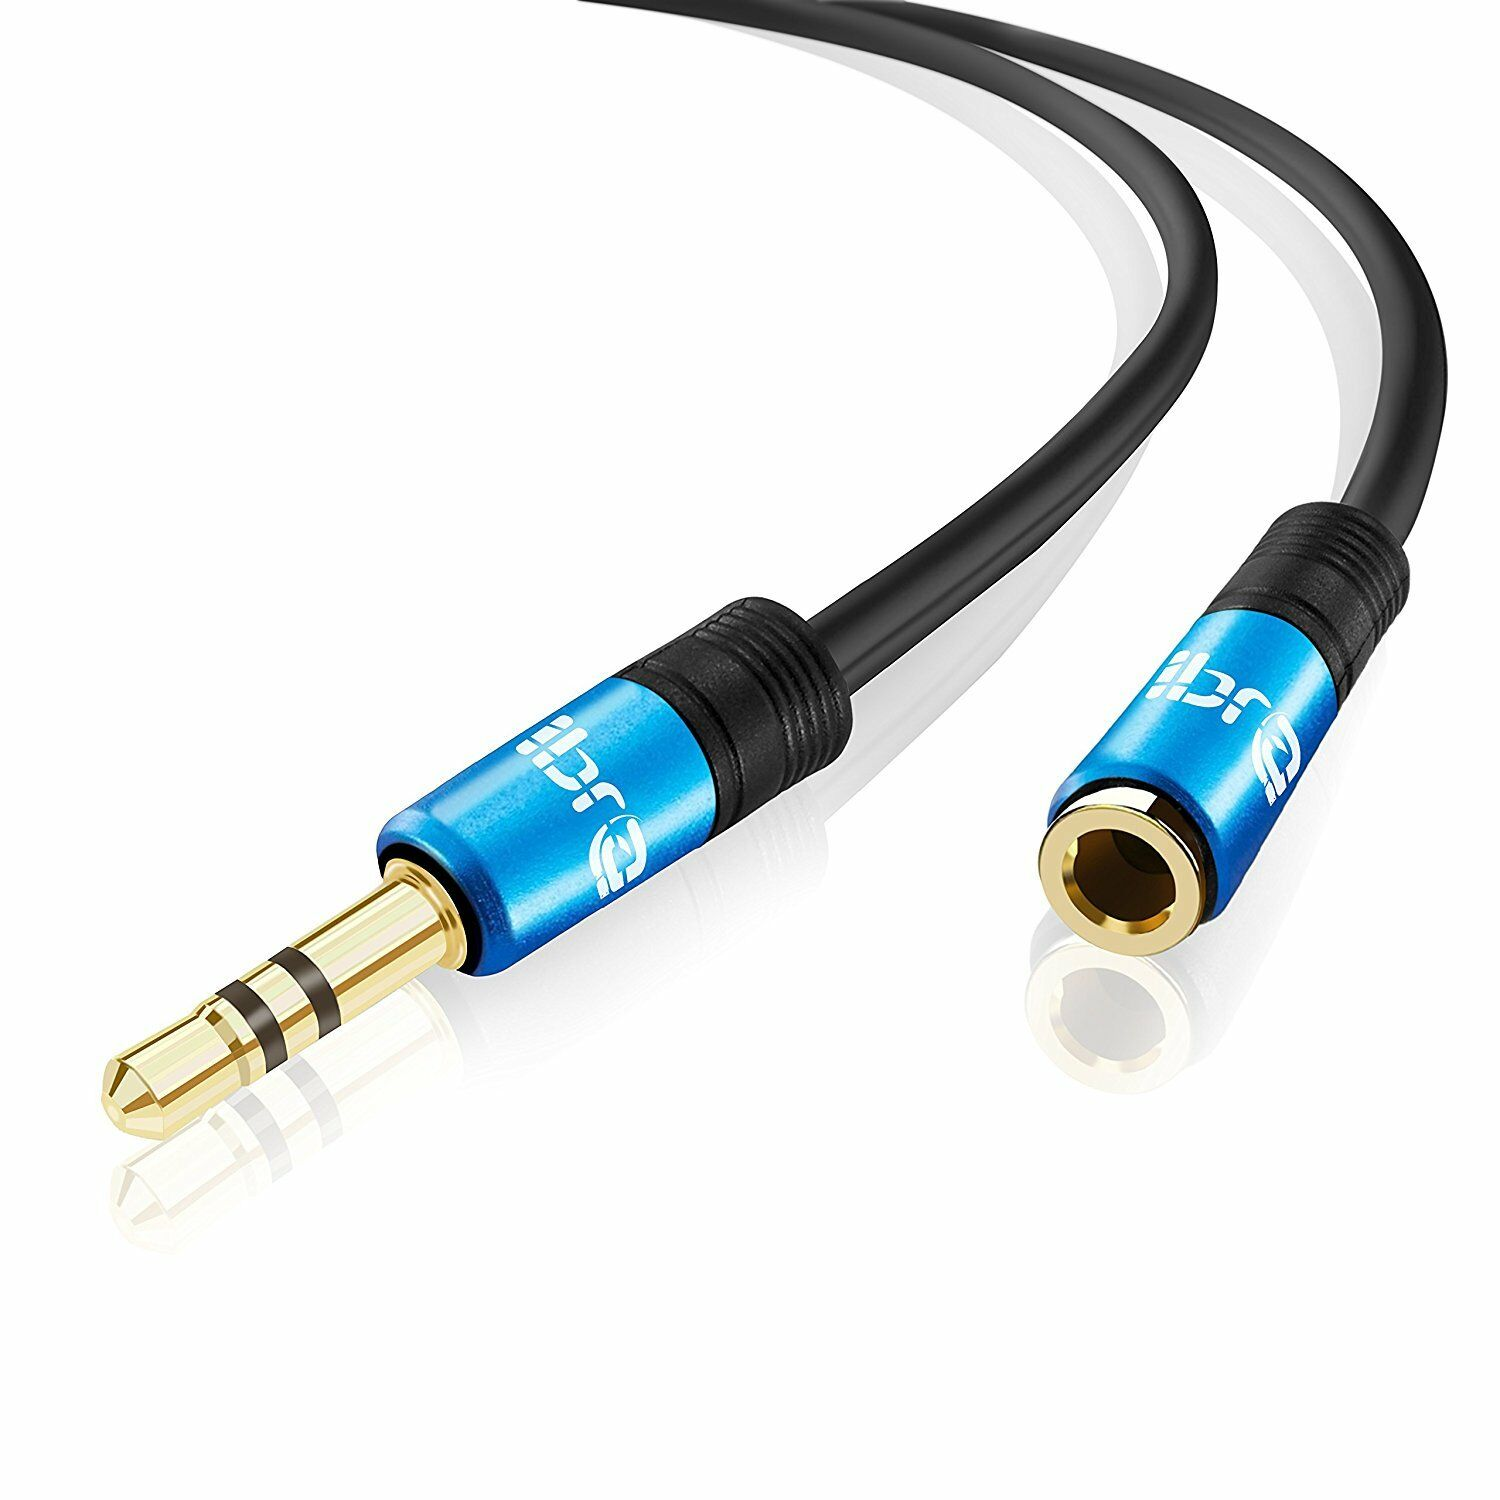 IBRA® 10m Stereo Jack Extension Cable 3.5mm Male > 3.5mm Female - Blue